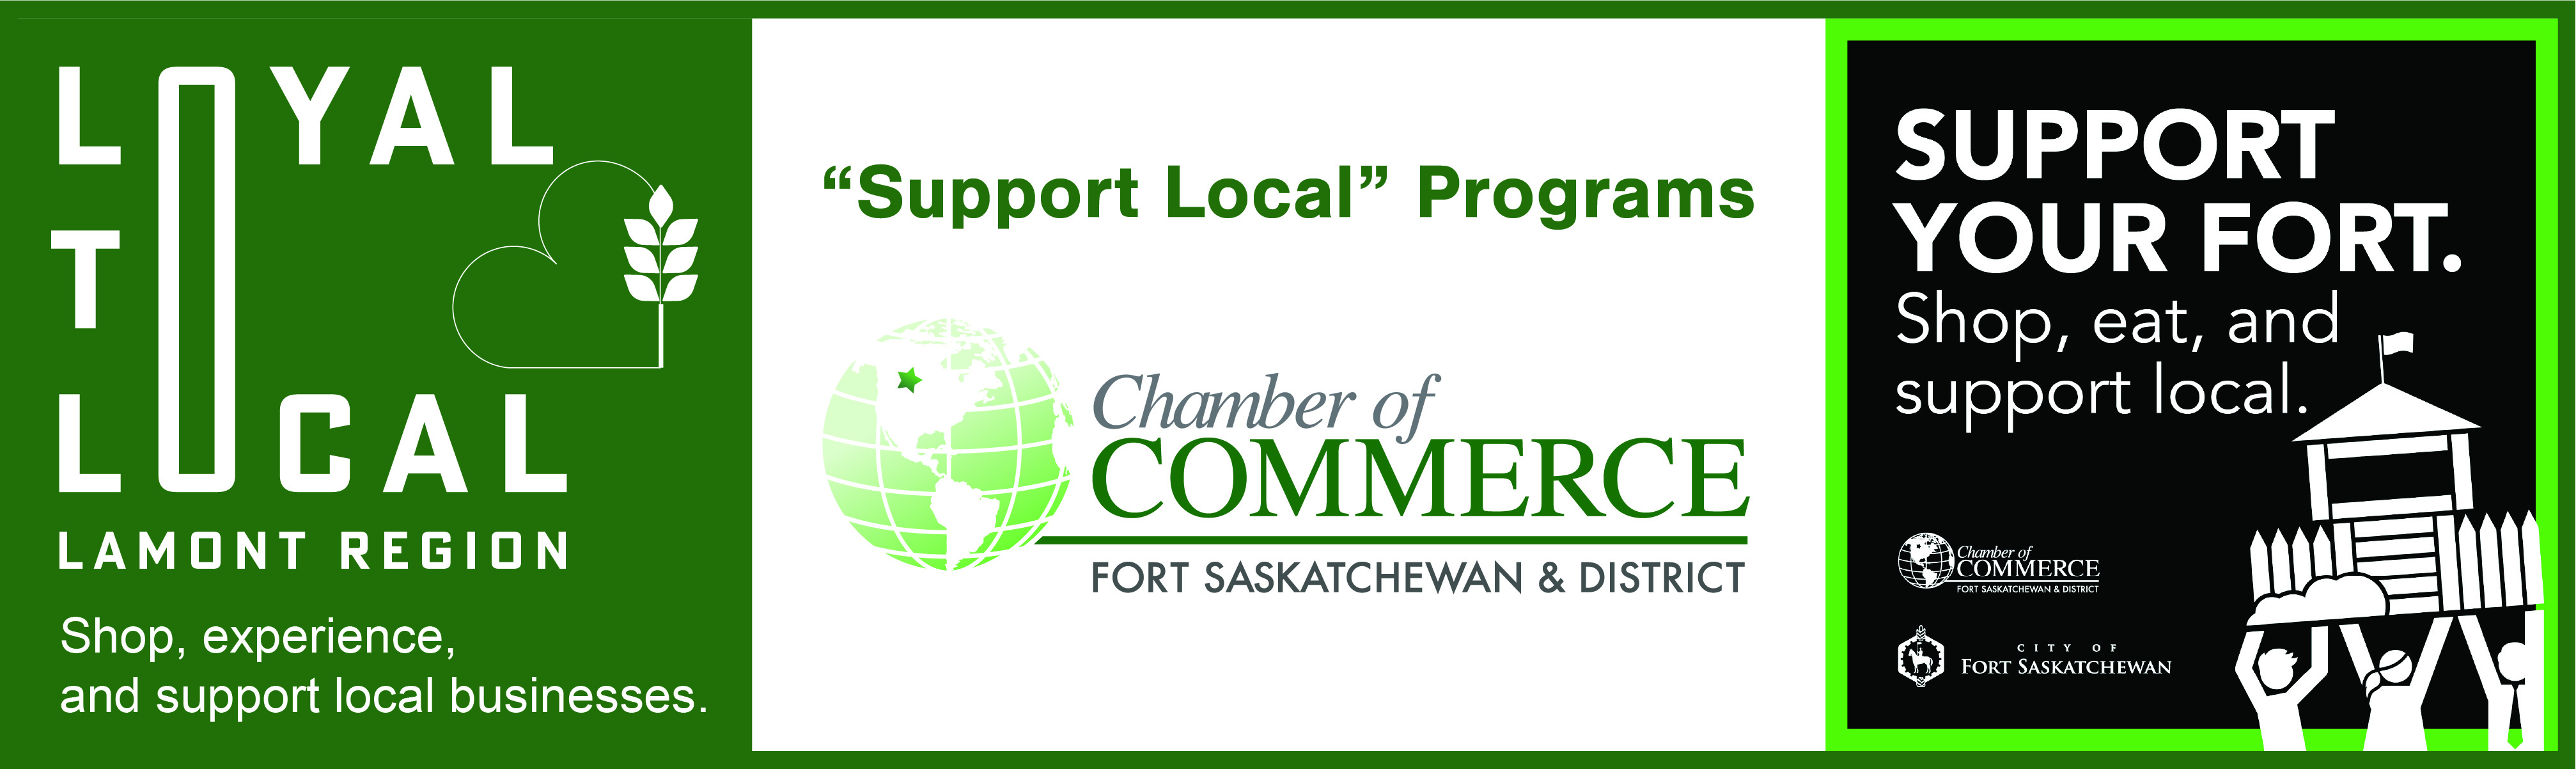 SupportLocal.banner-w1920.jpg